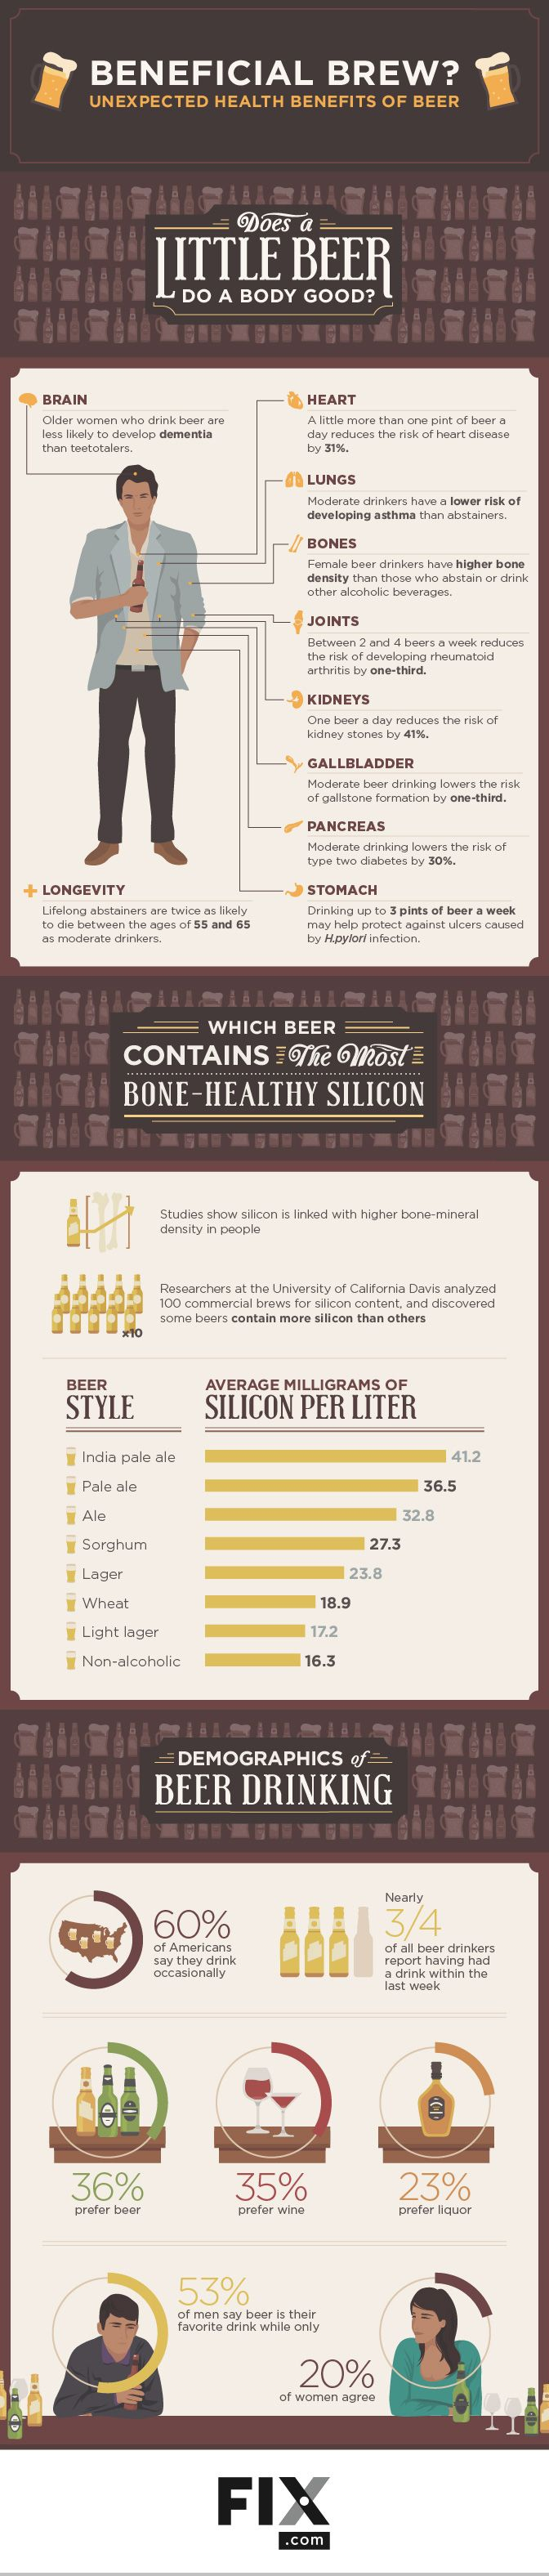 With the help of science, we can finally rejoice in claiming that beer can be healthy in certain quantities!